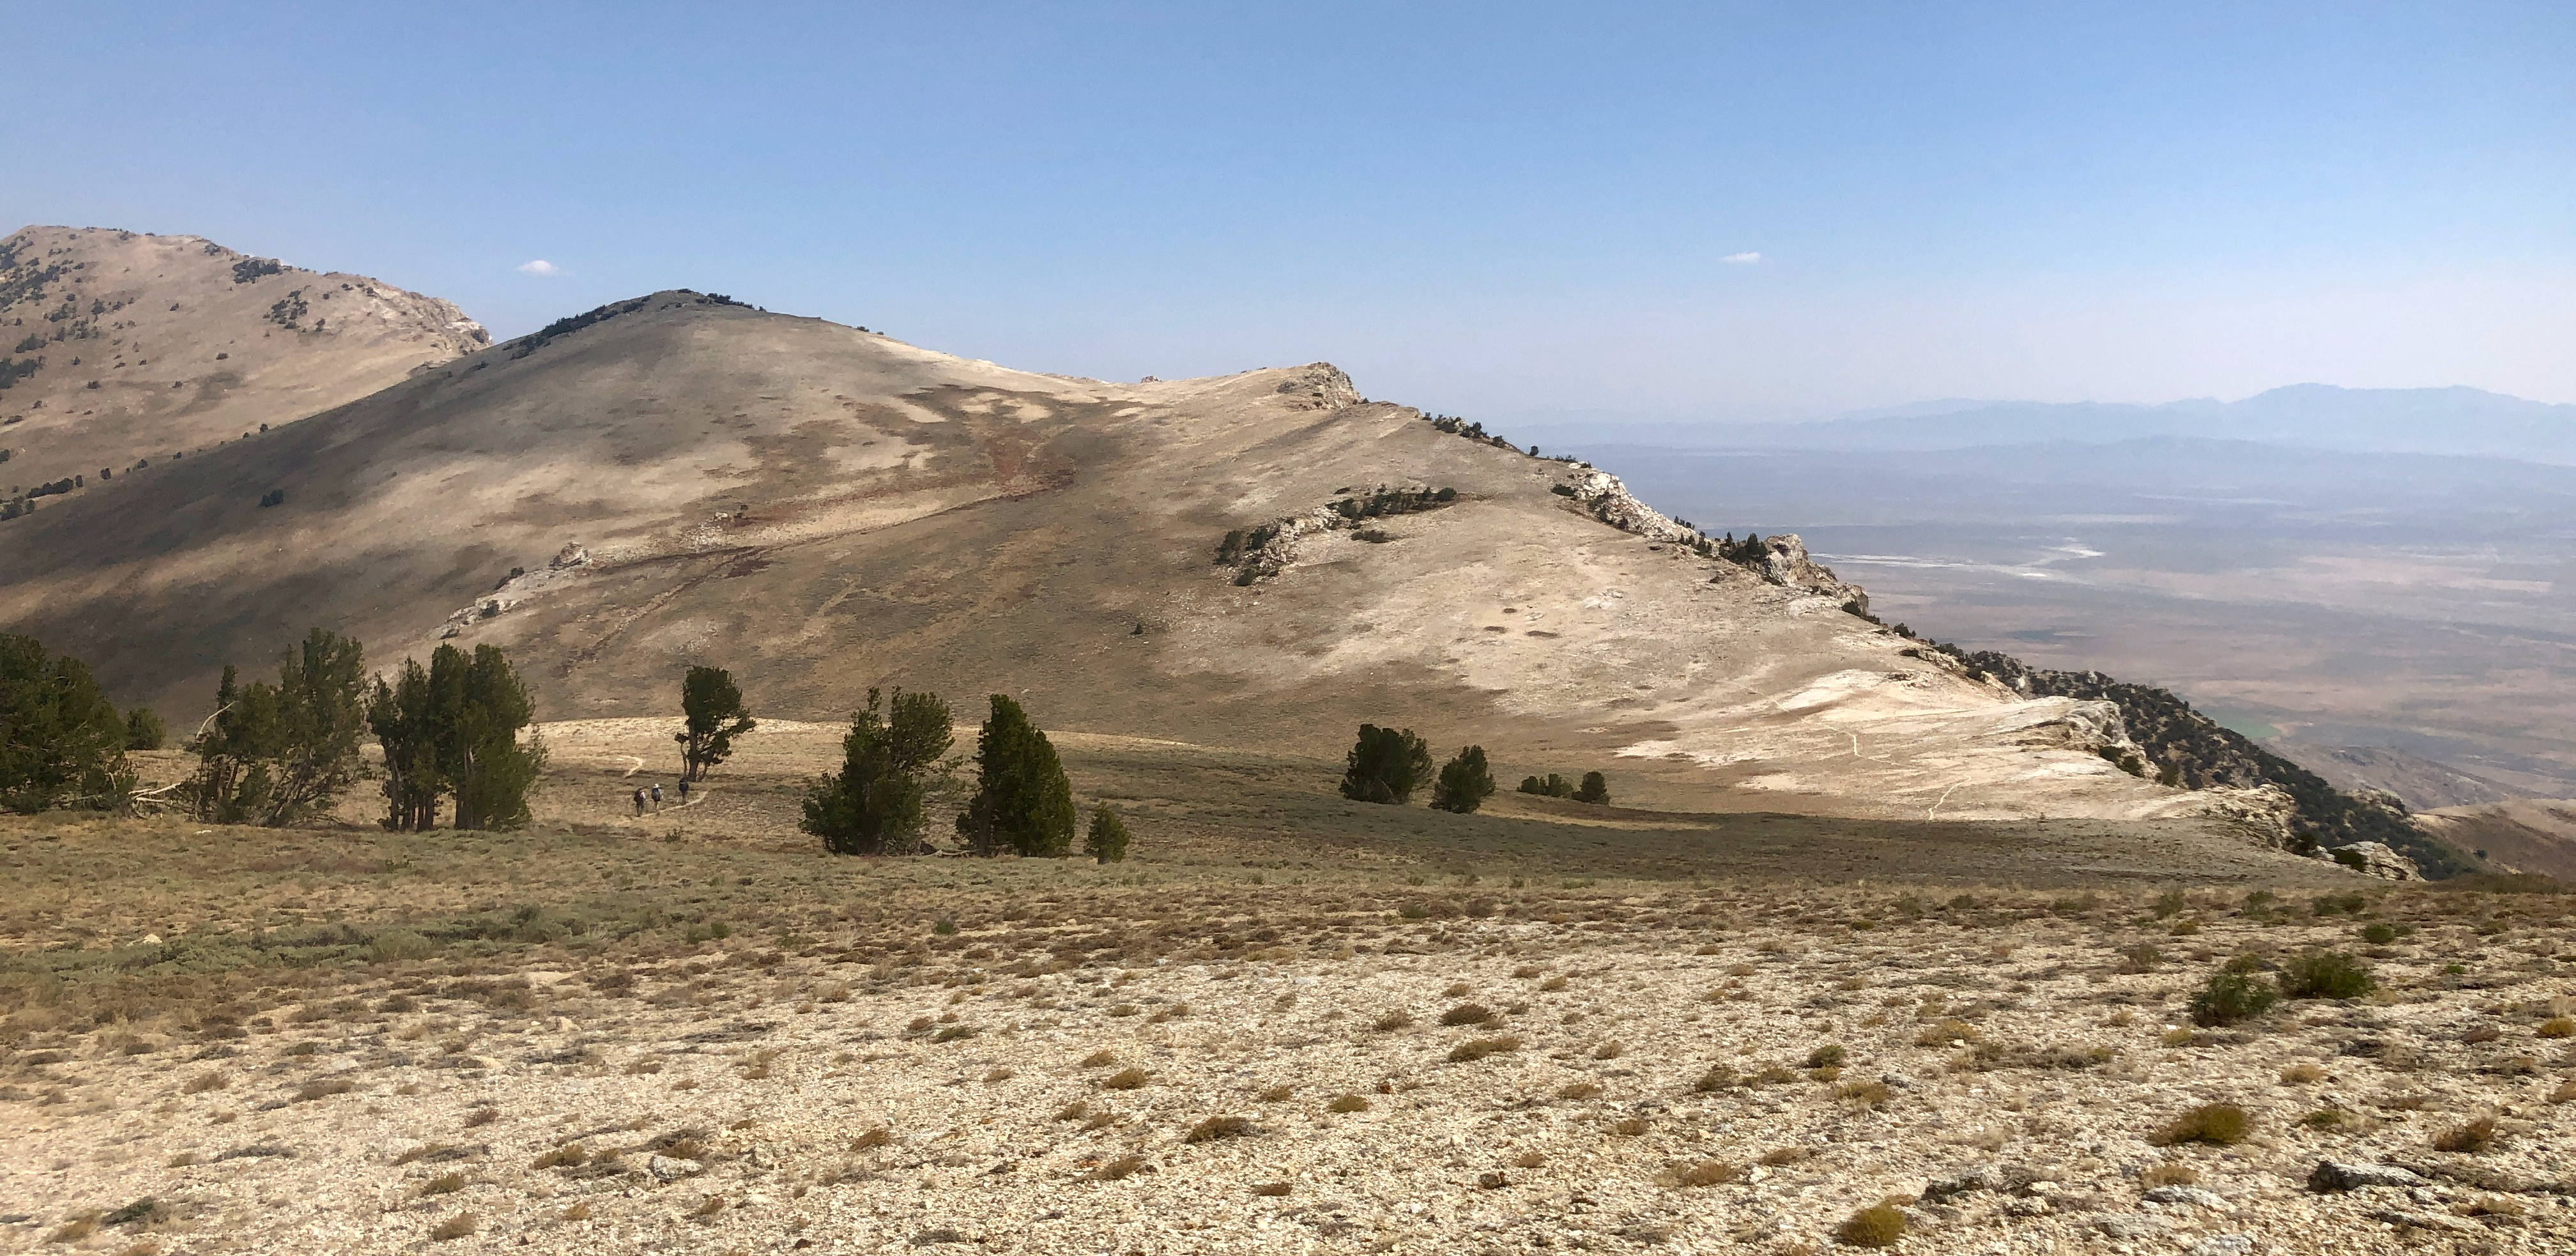 Here comes the high country: 11 miles without water